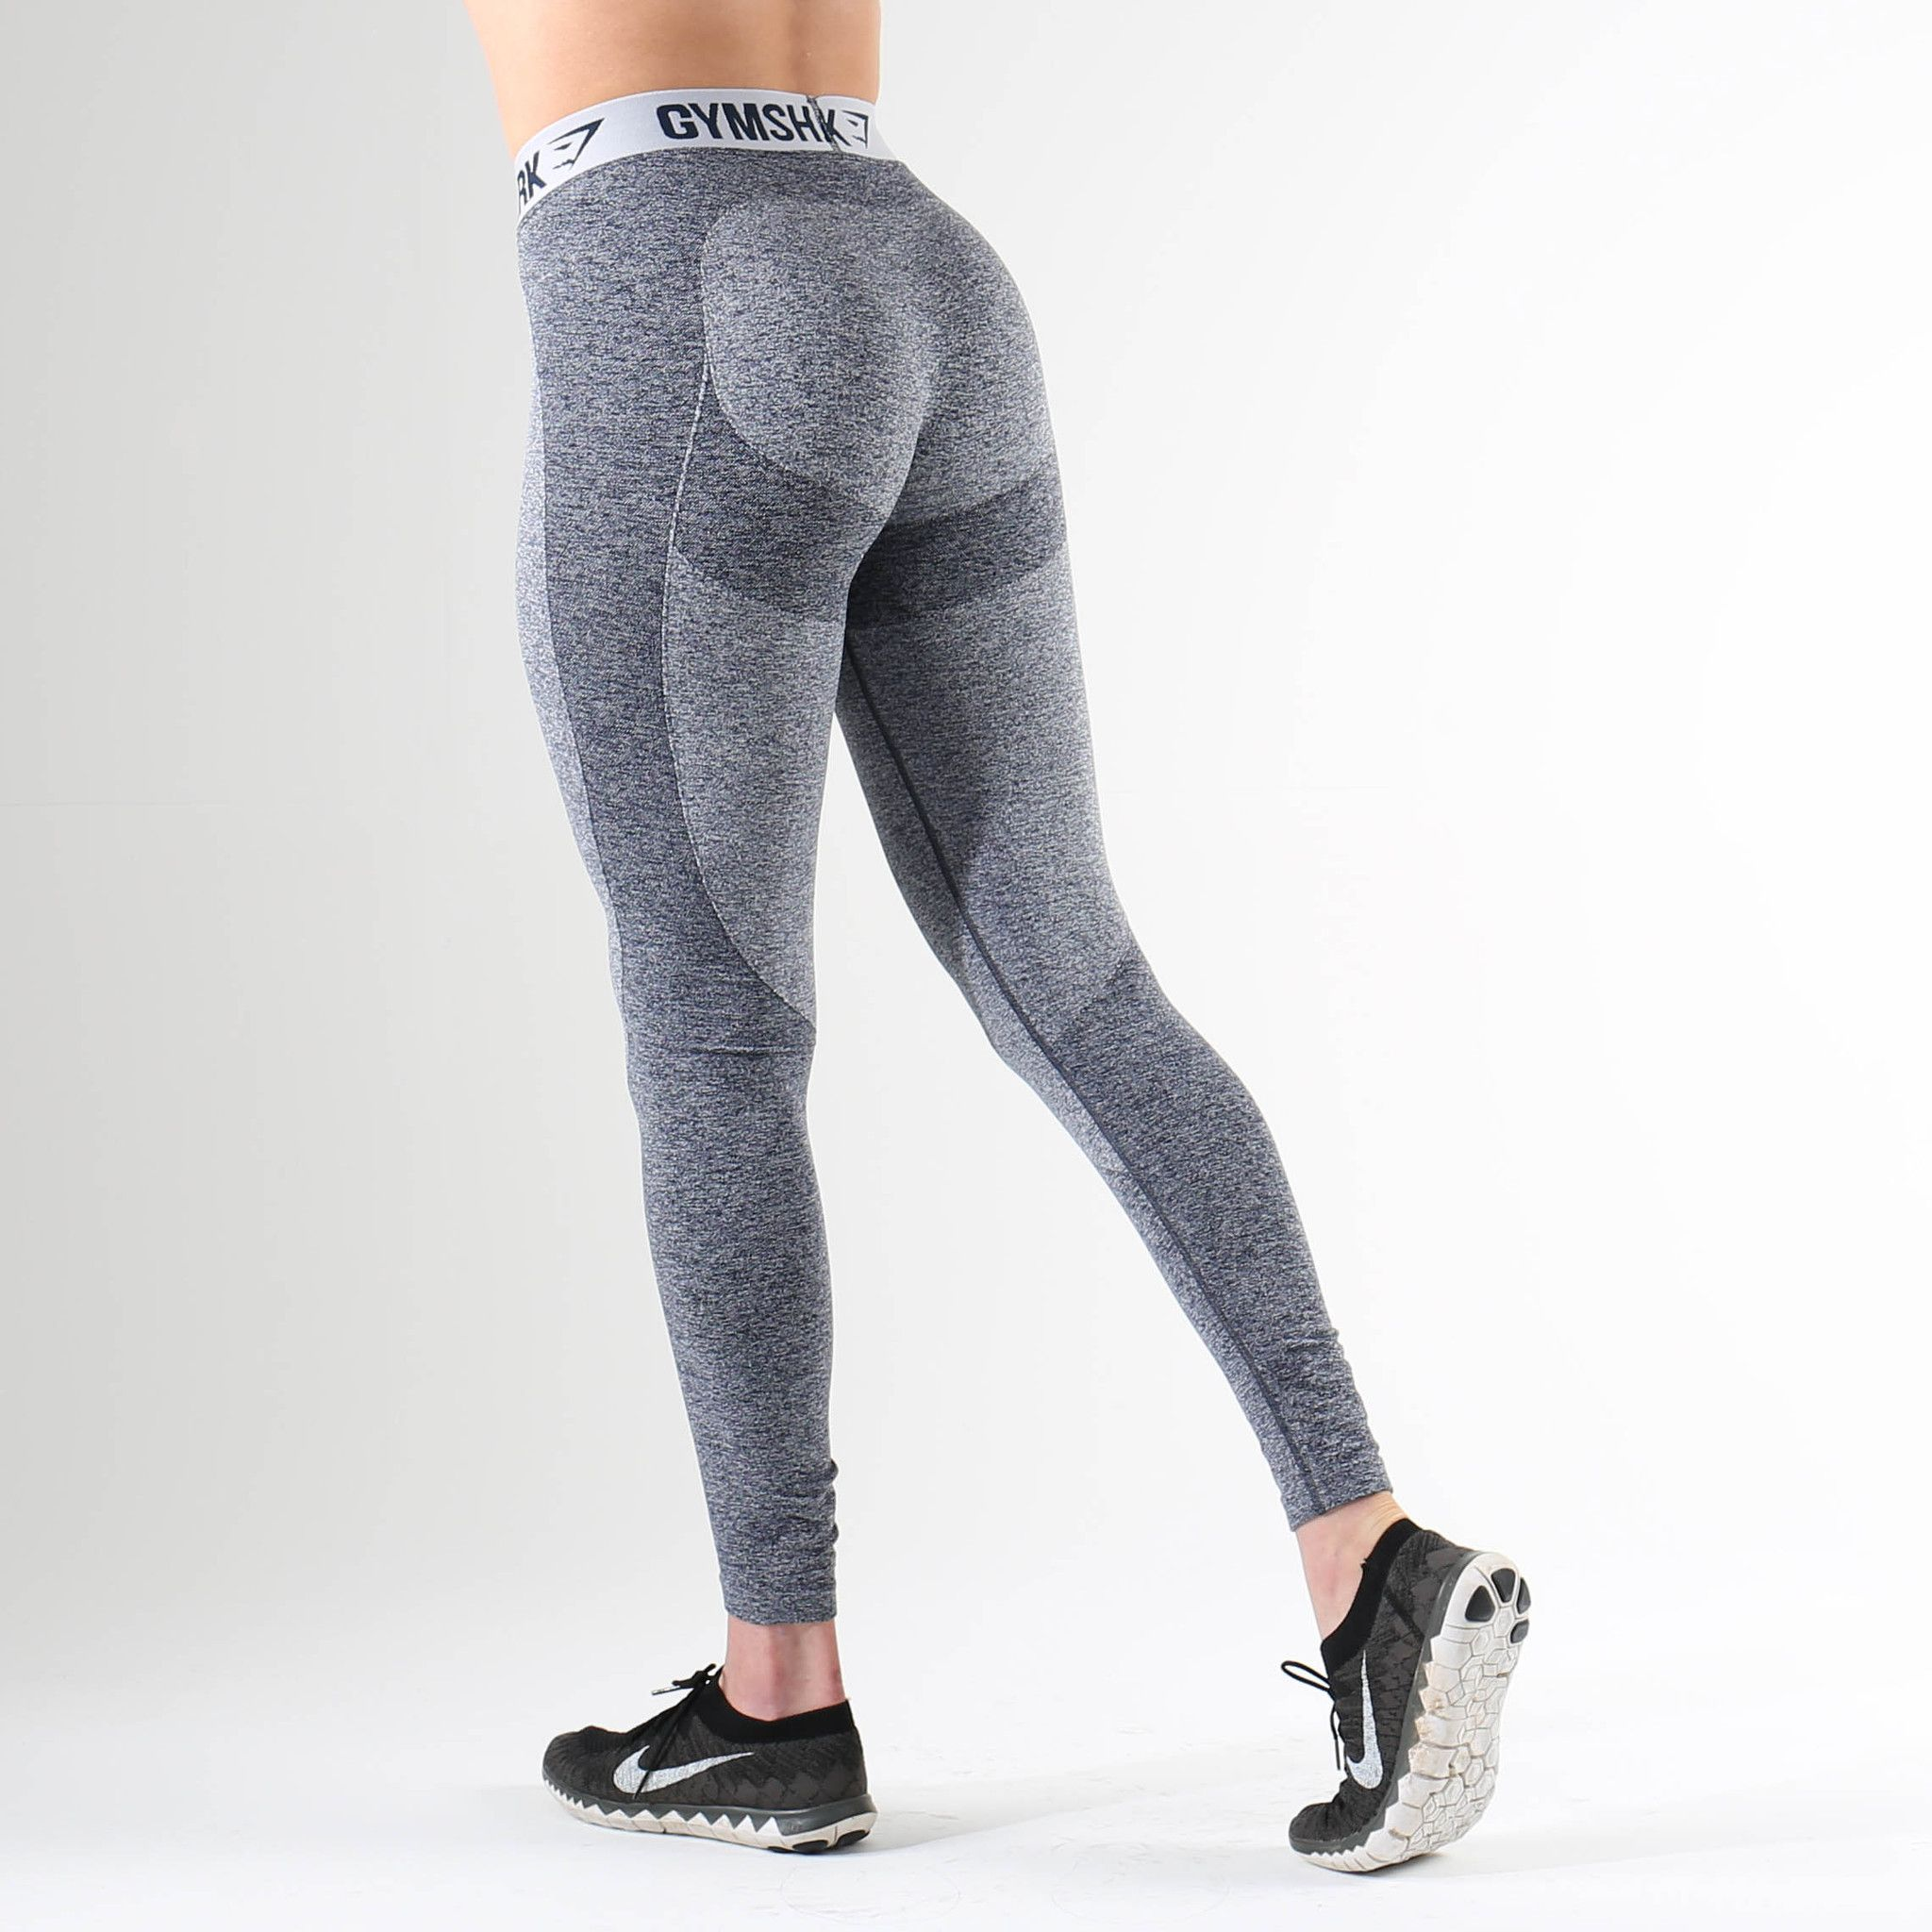 a3fdb61b4e3c2 Gymshark Flex Leggings - Sapphire Blue Marl/Light Grey | workout ...